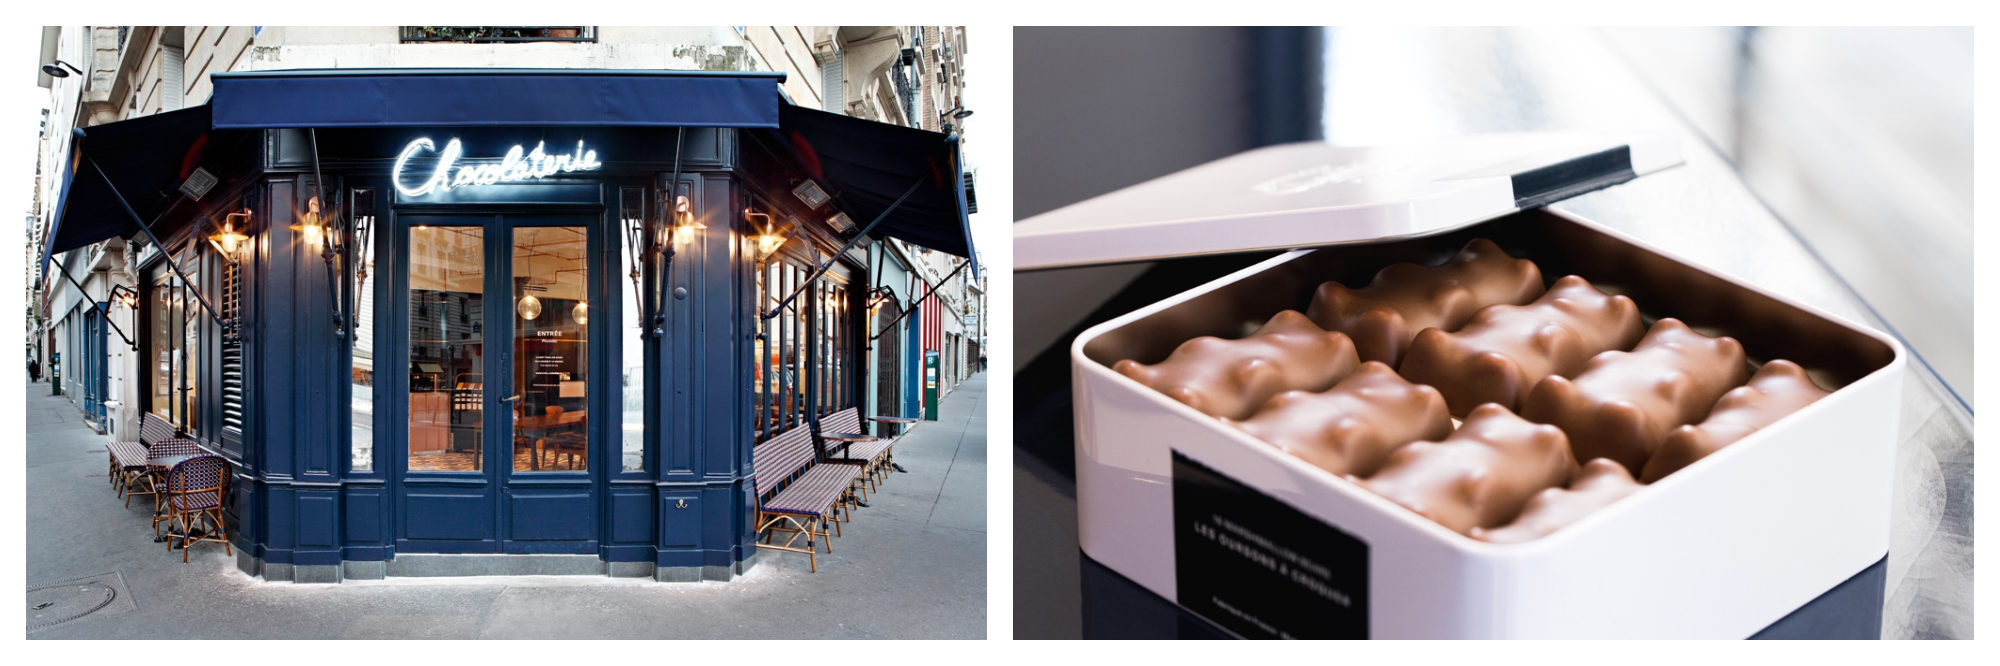 La Chocolaterie's blue exterior with neon sign in Paris 11 (left). Chocolate bears in a box (right).